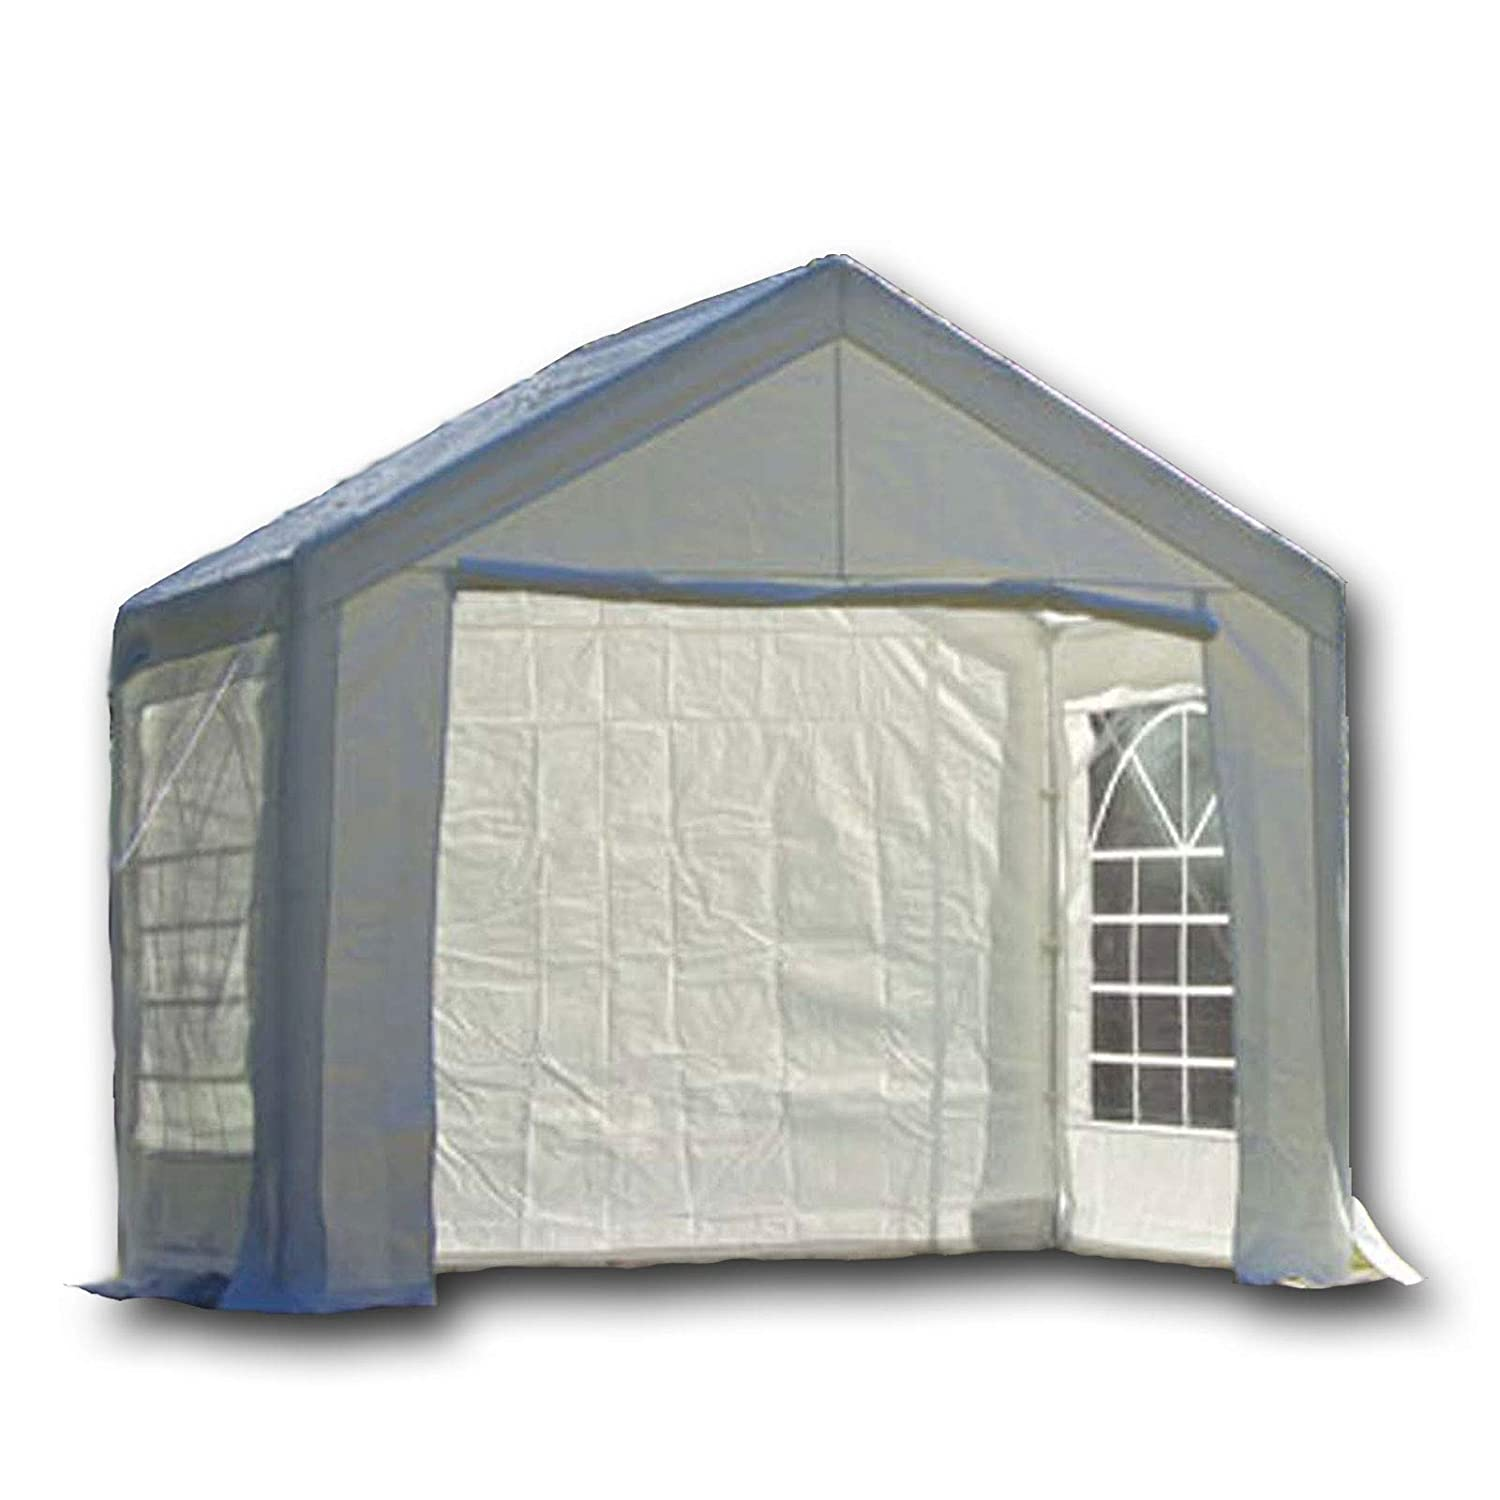 3m x 2m (10ft x 7ft) Heavy Duty Marquee, Marquees, Party Tent, Gazebo Crocodile Trading Ltd TL32W